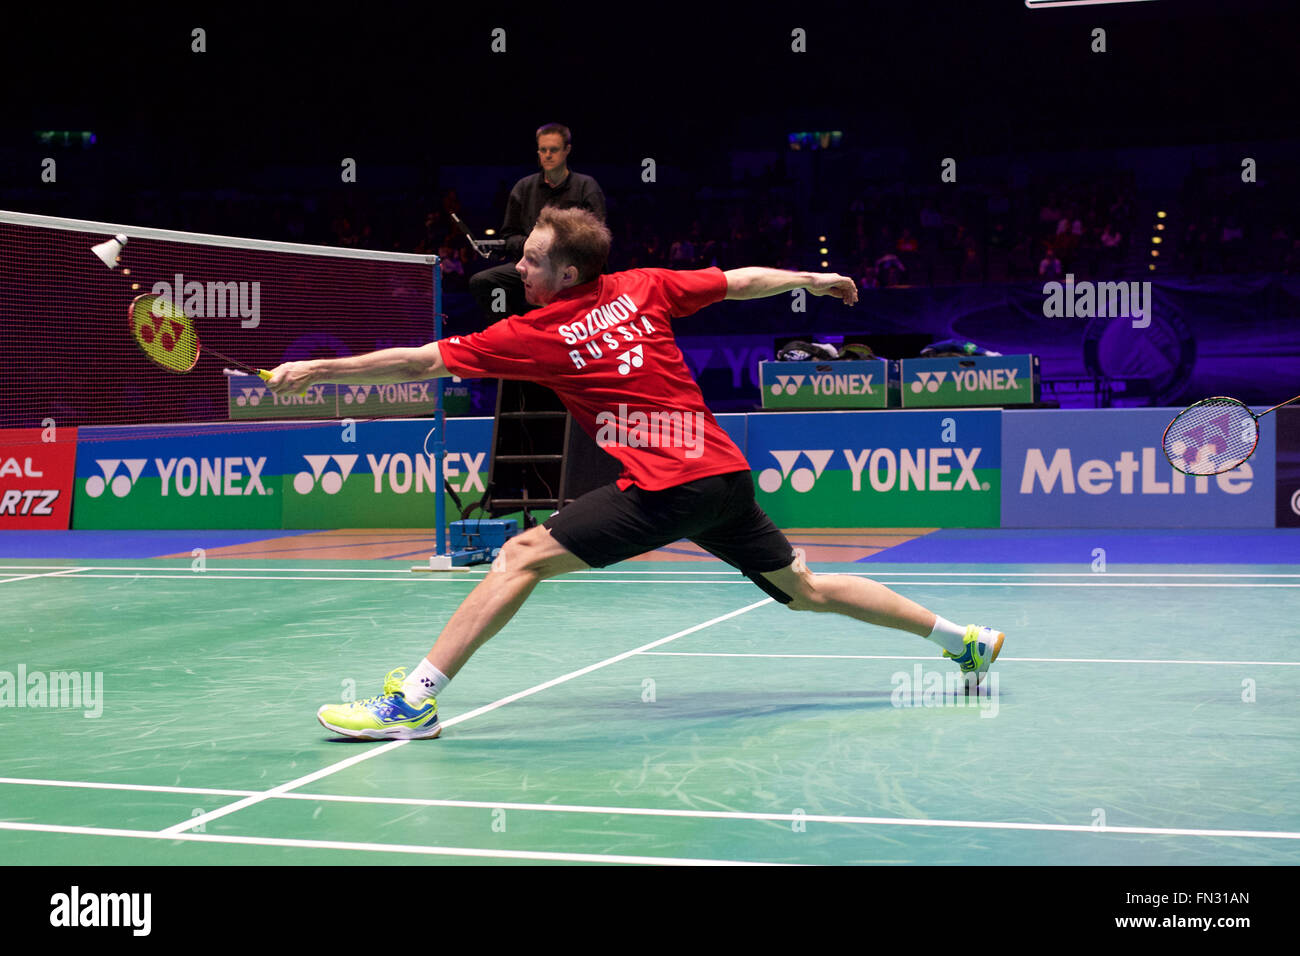 Barclaycard Arena Birmingham UK 13th Mar 2016 Yonex All